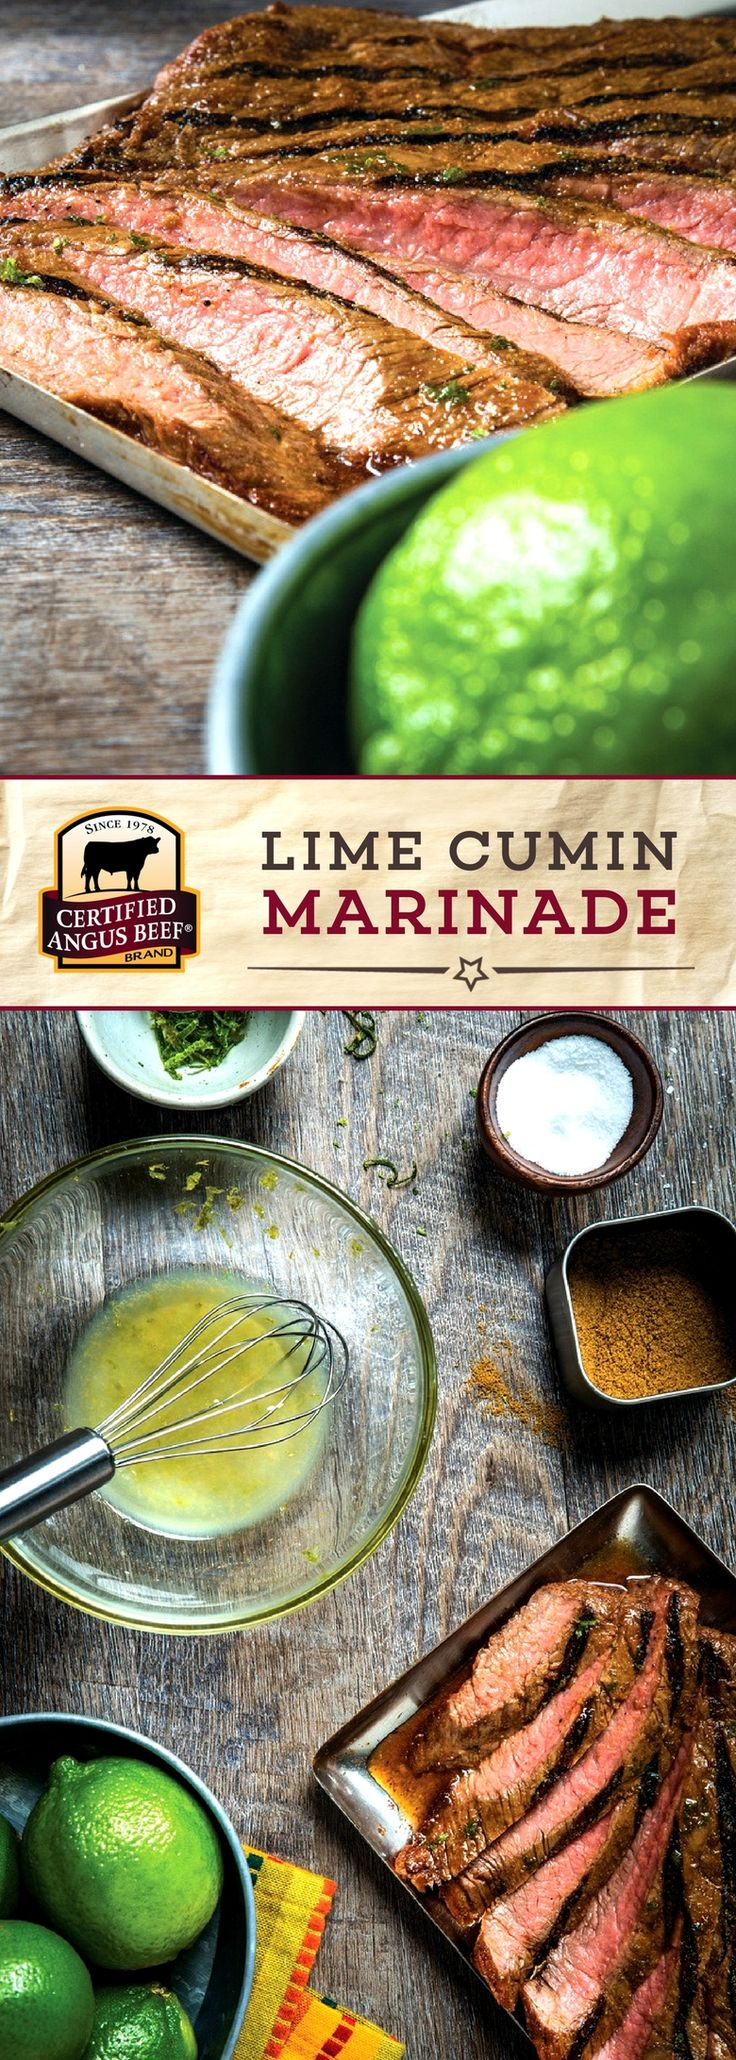 Certified Angus Beef®️️ brand Lime Cumin Marinade is PACKED with zesty lime flavor! The combination of lime juice, lime zest, and cumin brings out a depth of flavor in any cut of beef.  #bestangusbeef #certifiedangusbeef #marinade #seasoning